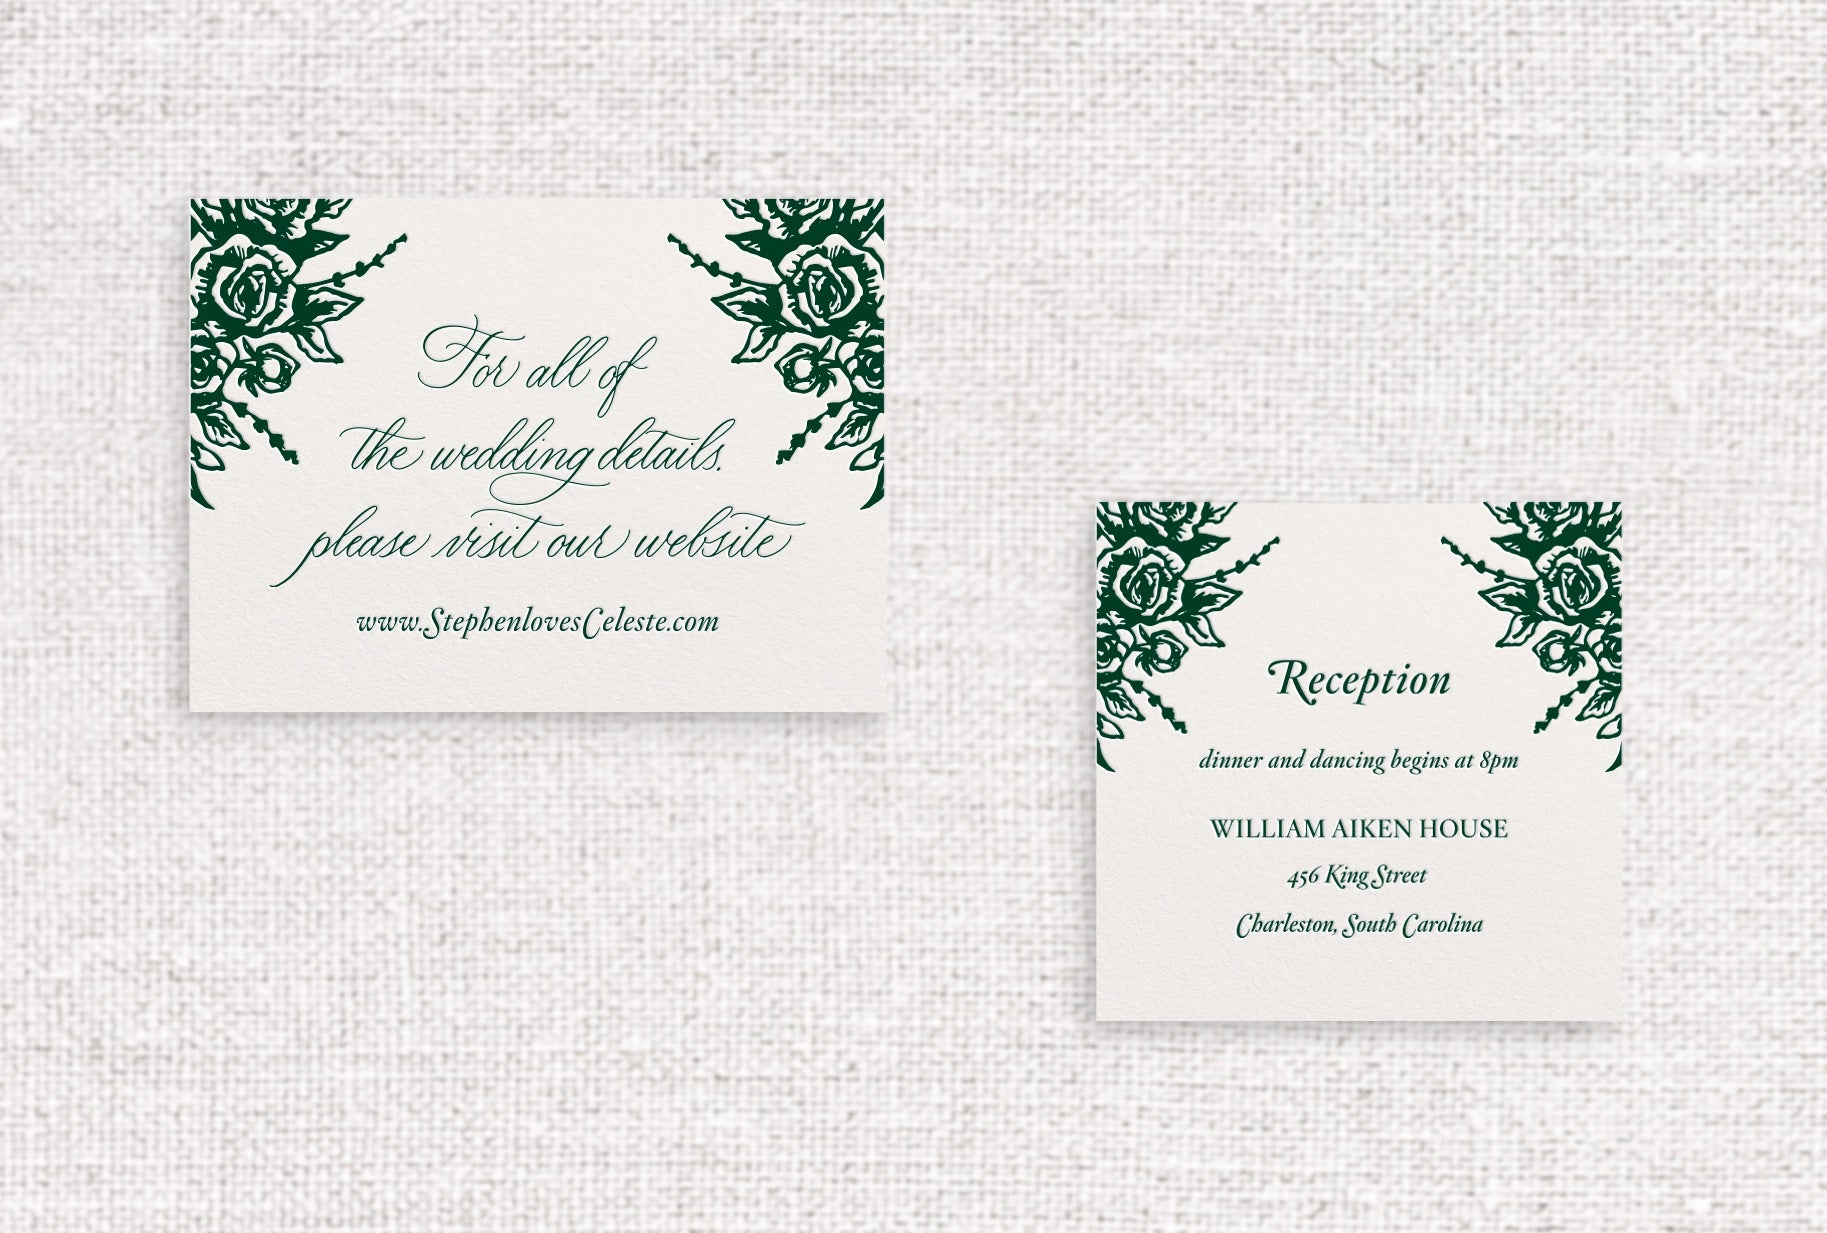 Celeste web or reception card letterpressed in lockwood ink on ivory stock